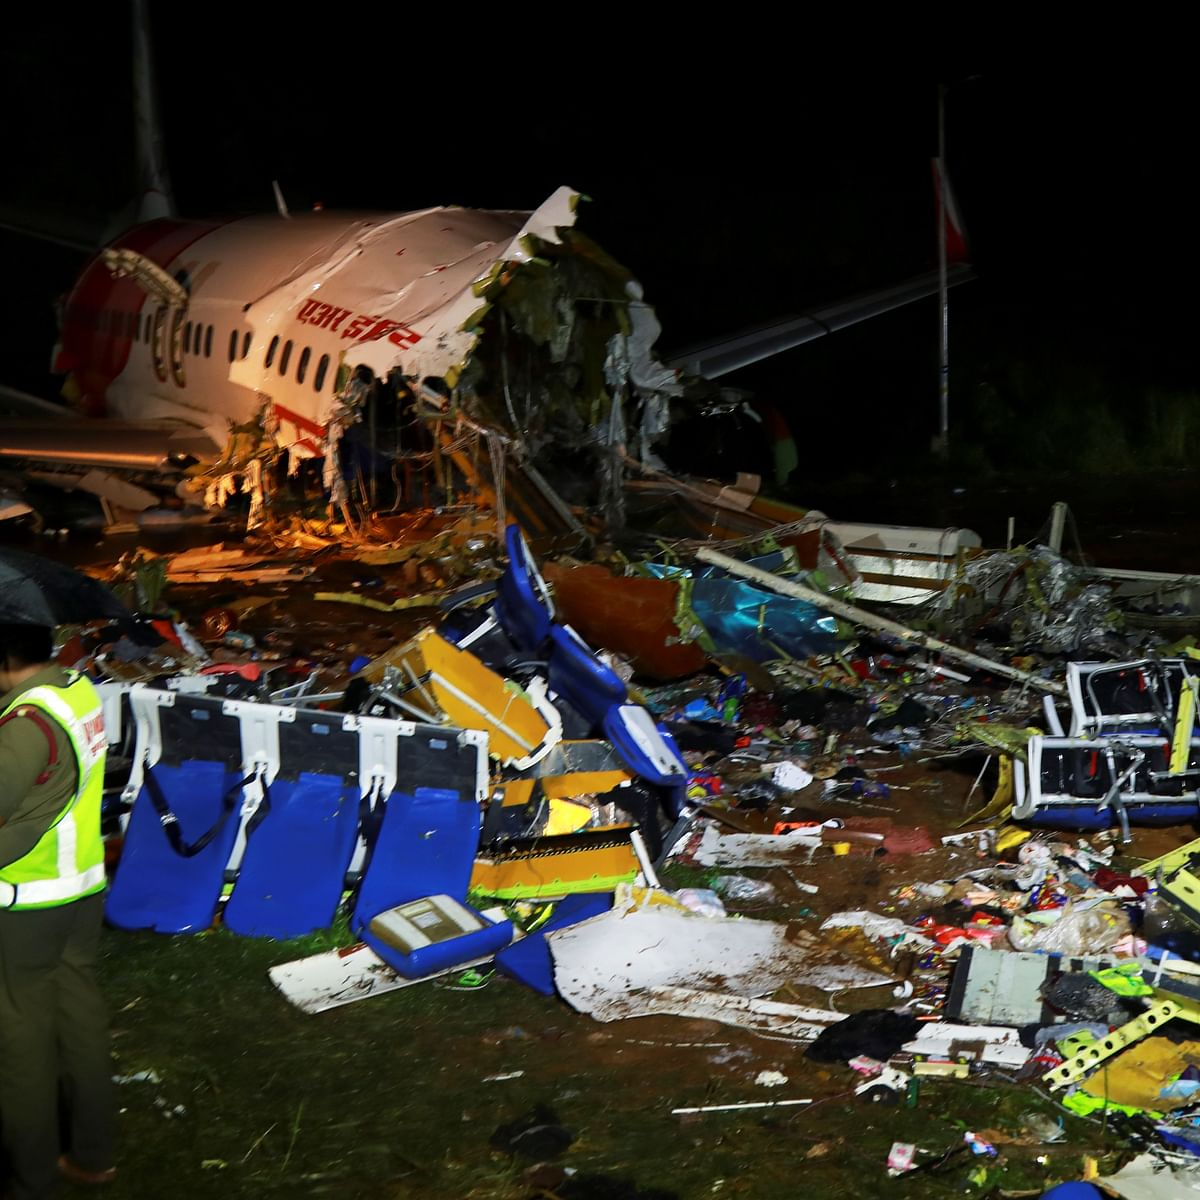 Calicut Air India Plane Crash: Death toll rises to 17; 2 pilots dead, all 4 crew members safe, says Air India Express